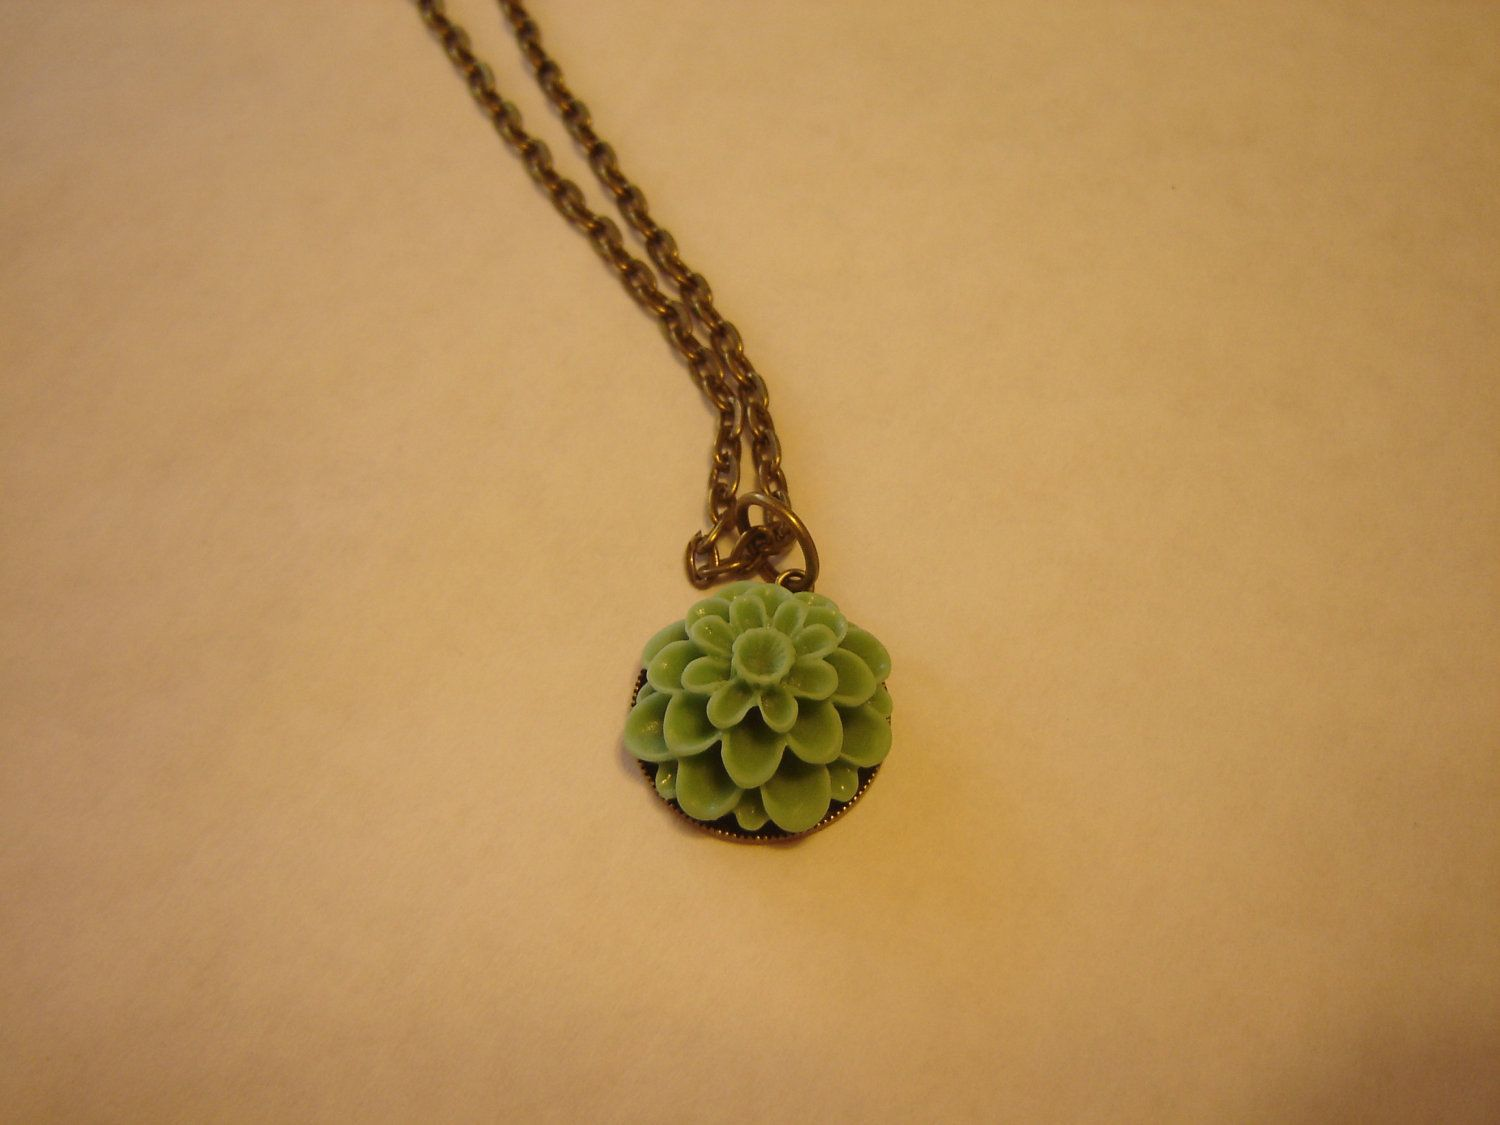 Antique brass necklace with sea foam green chrysanthemum charm, via Etsy.